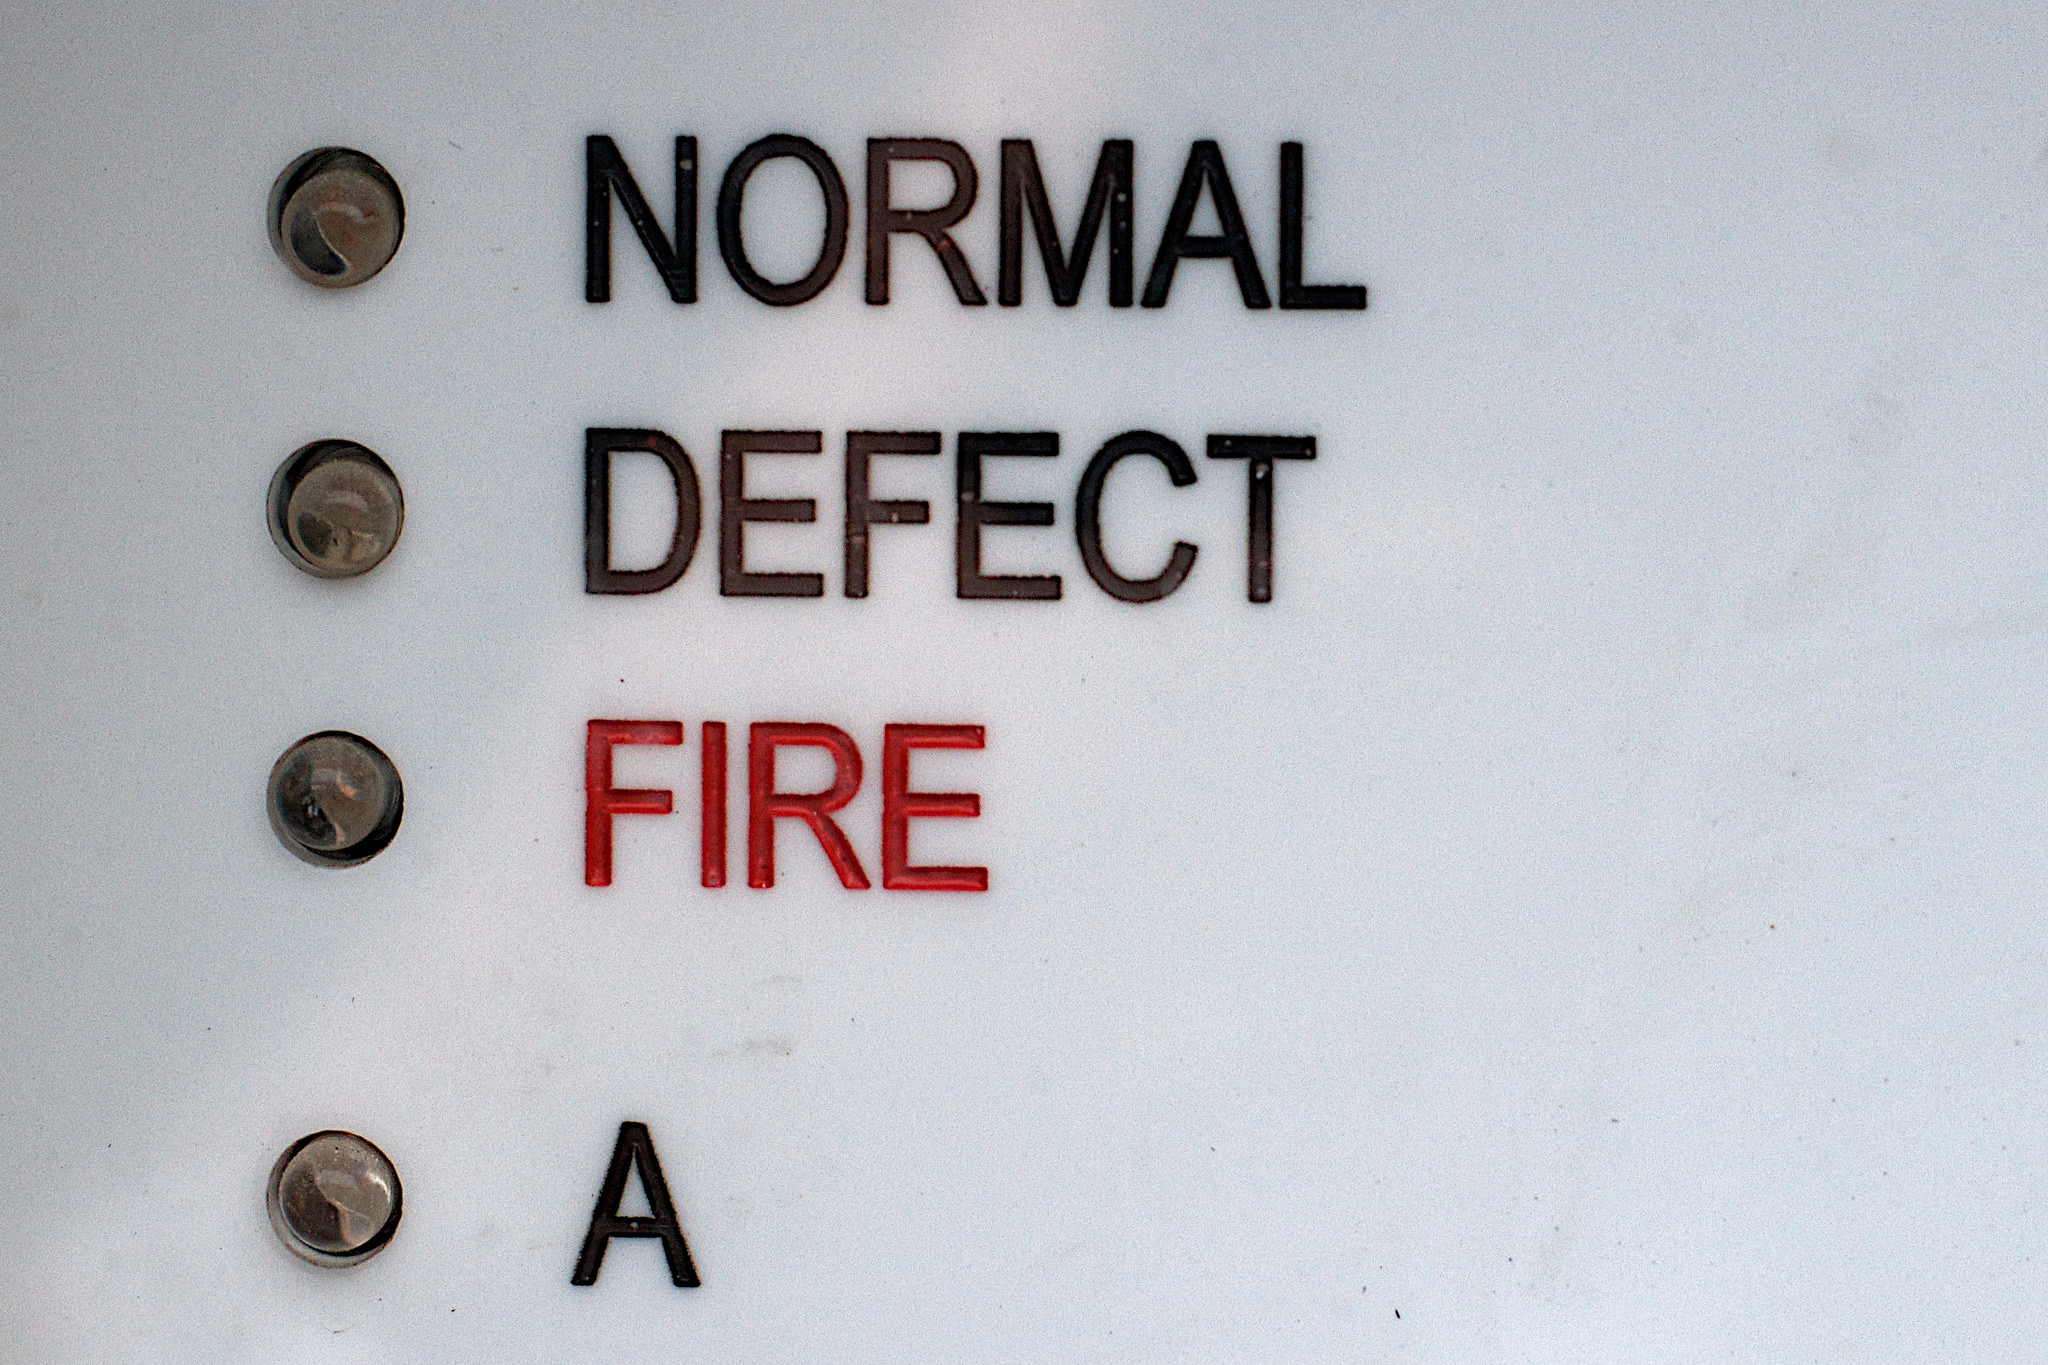 Image of indicator lights labeled Normal, Defect, and Fire